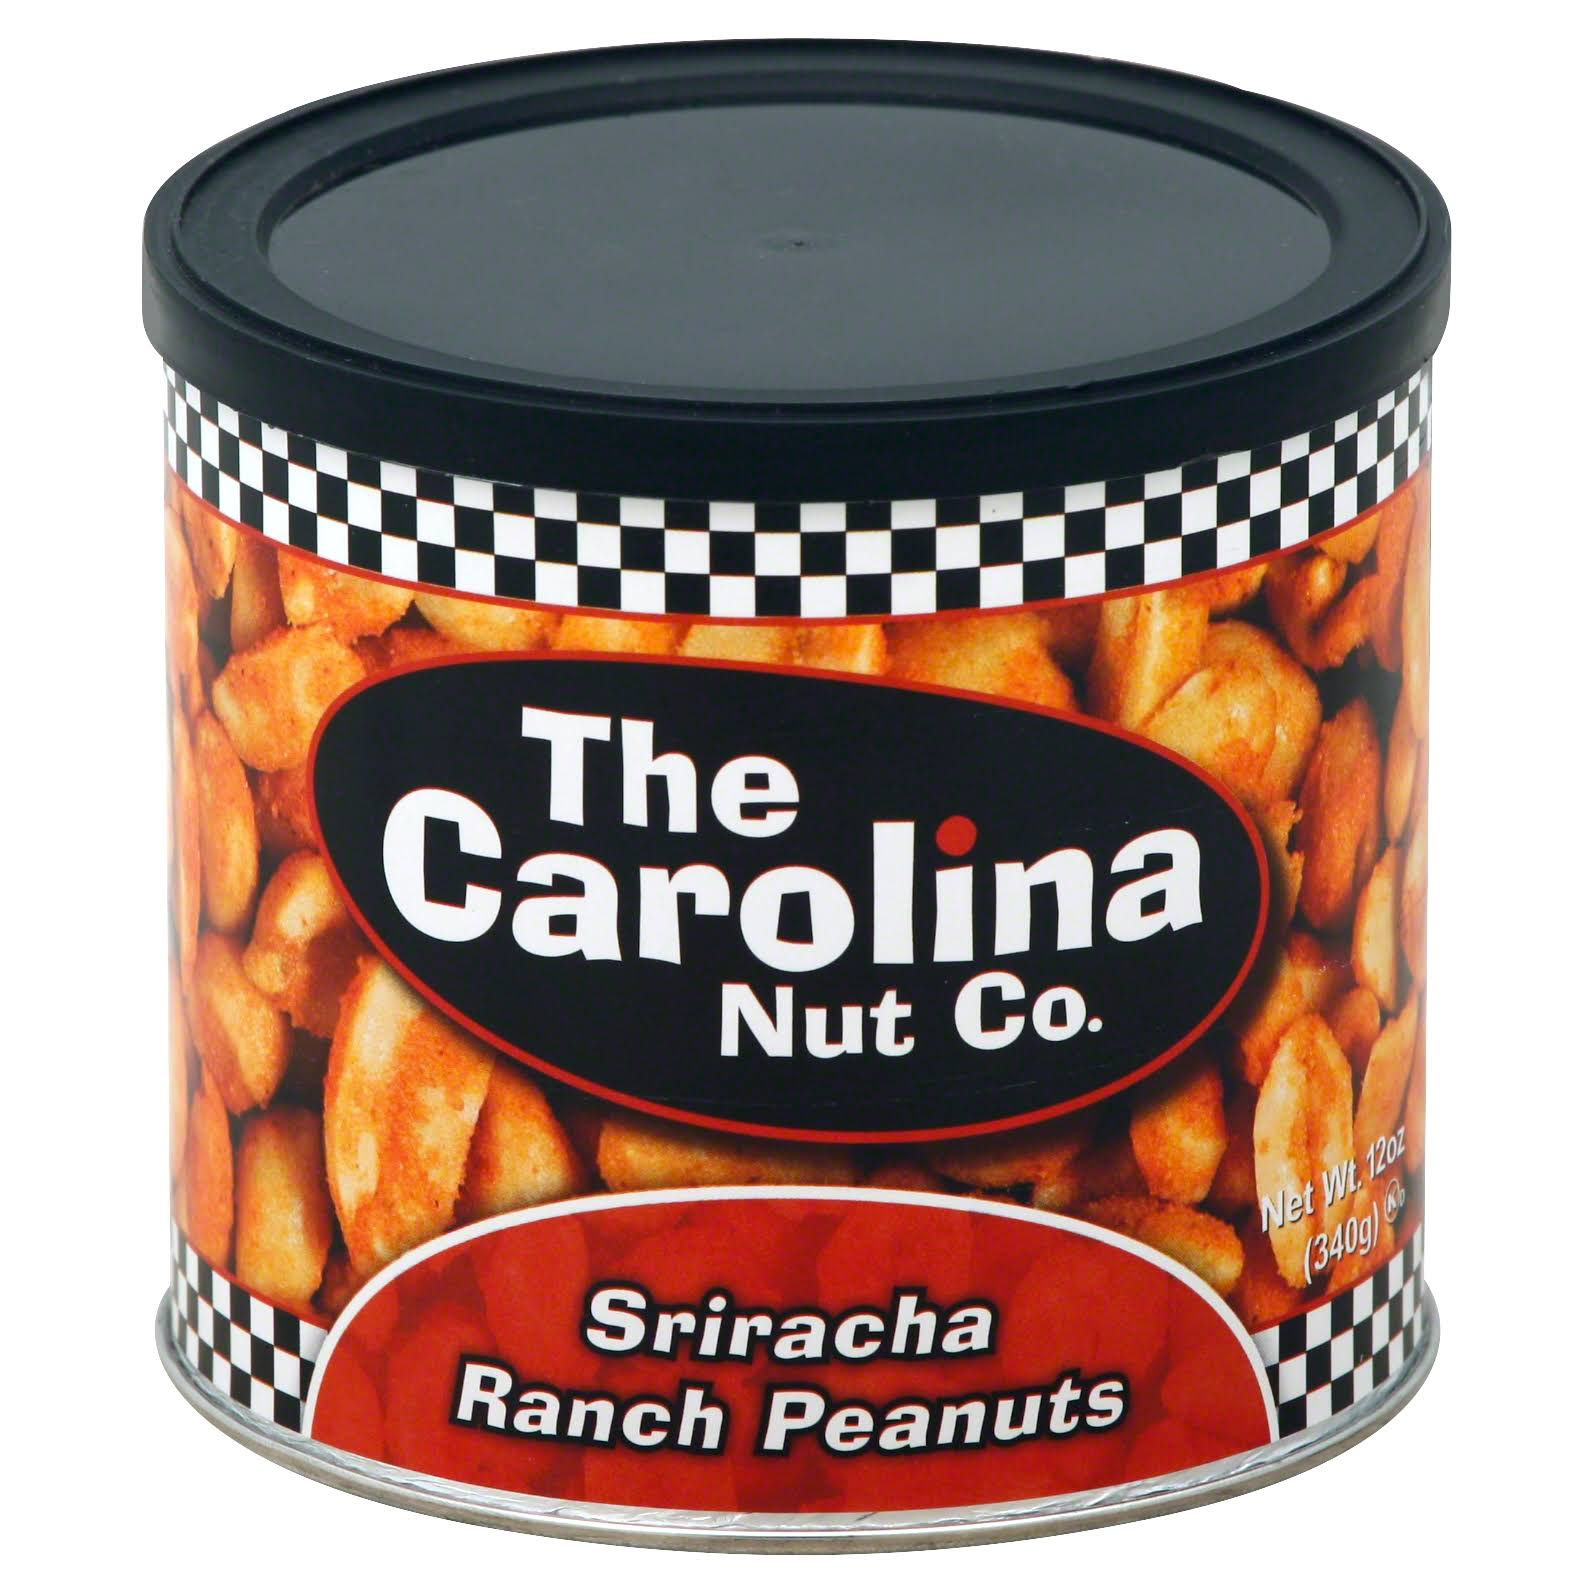 The Carolina Nut Co. Sriracha Ranch Peanuts